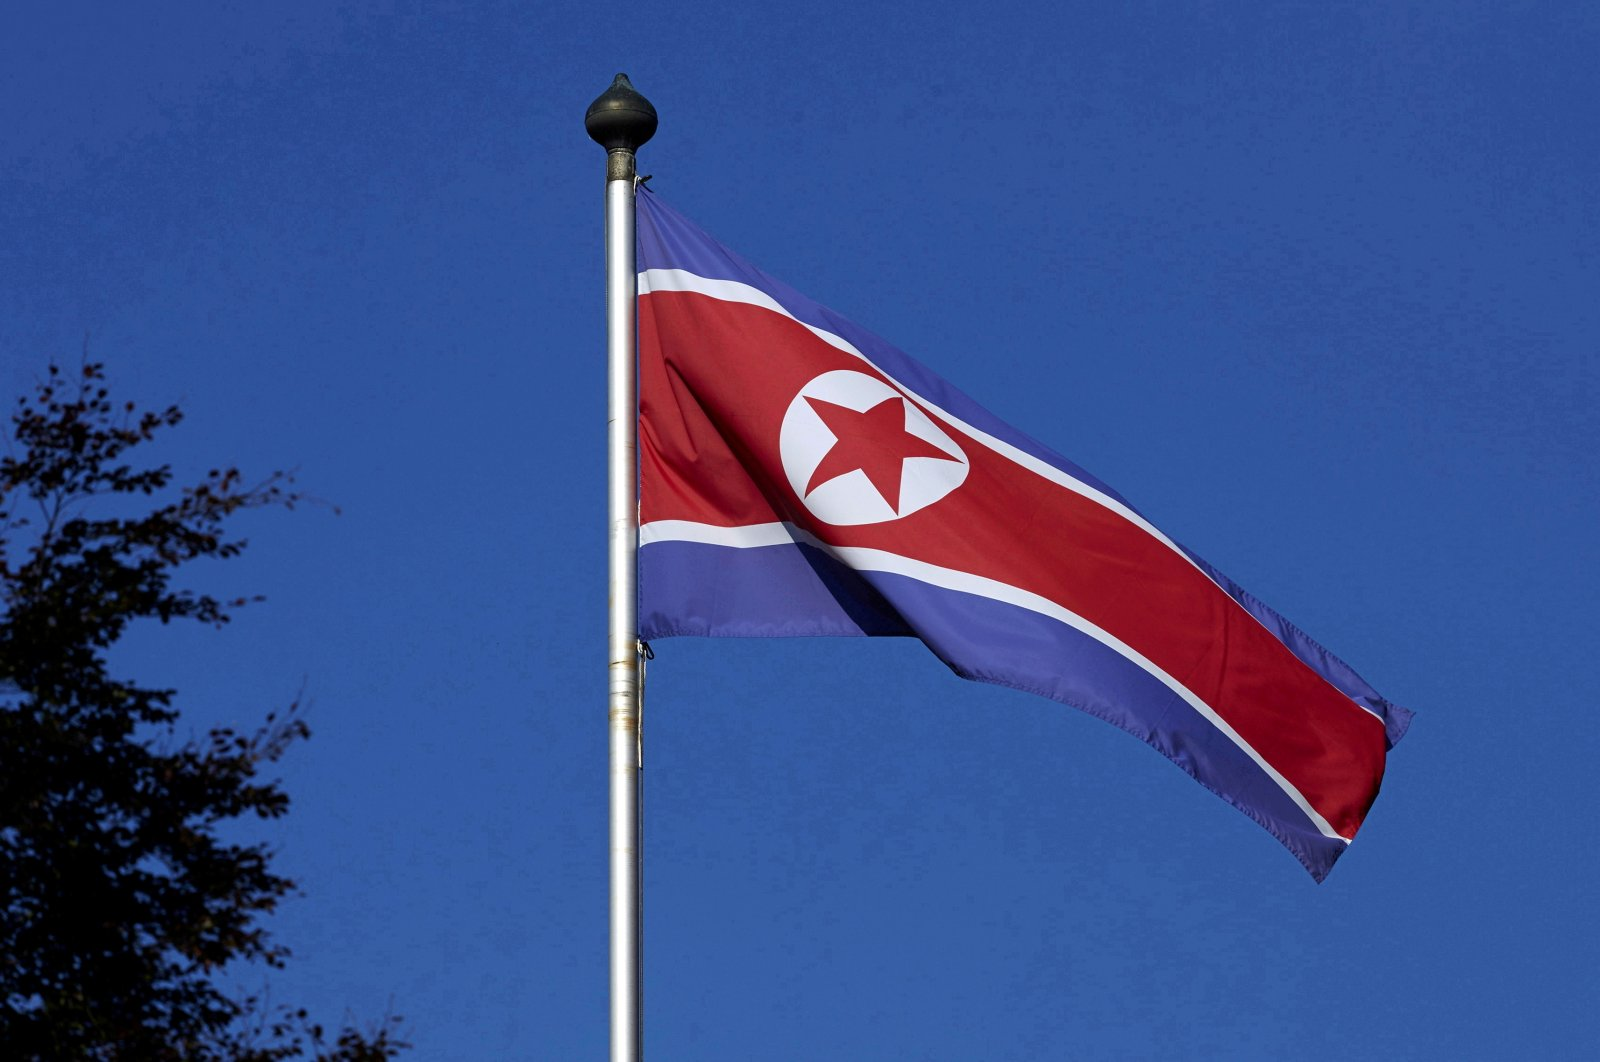 A North Korean flag flies on a mast at the Permanent Mission of North Korea in Geneva, Switzerland, Oct. 2, 2014. (Reuters Photo)